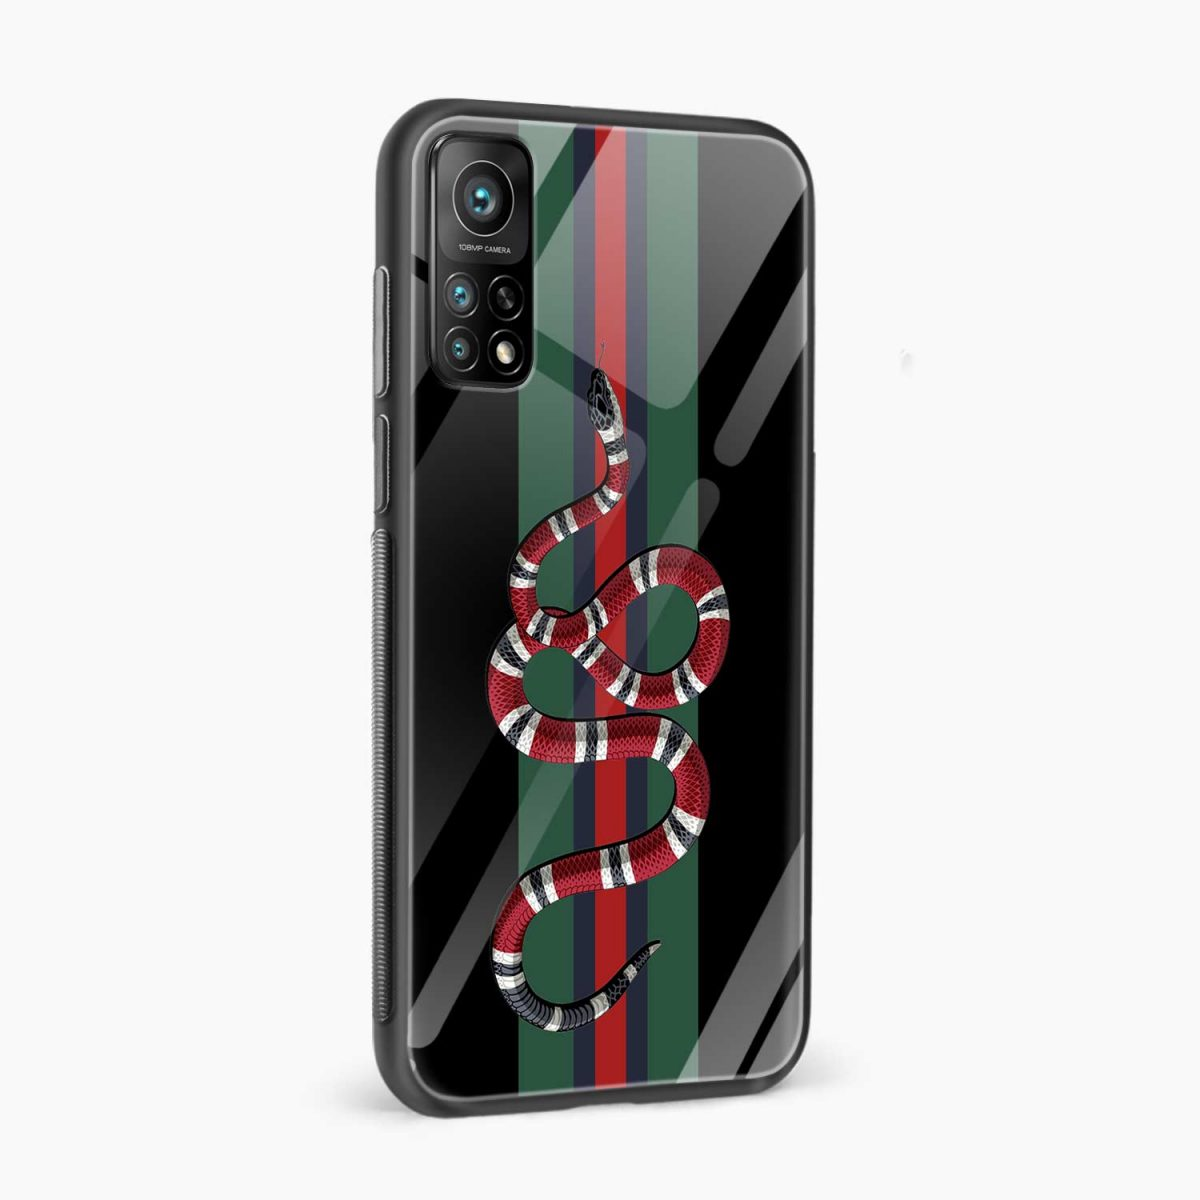 gucci snake with strips xiaomi mi 10t pro back cover side view